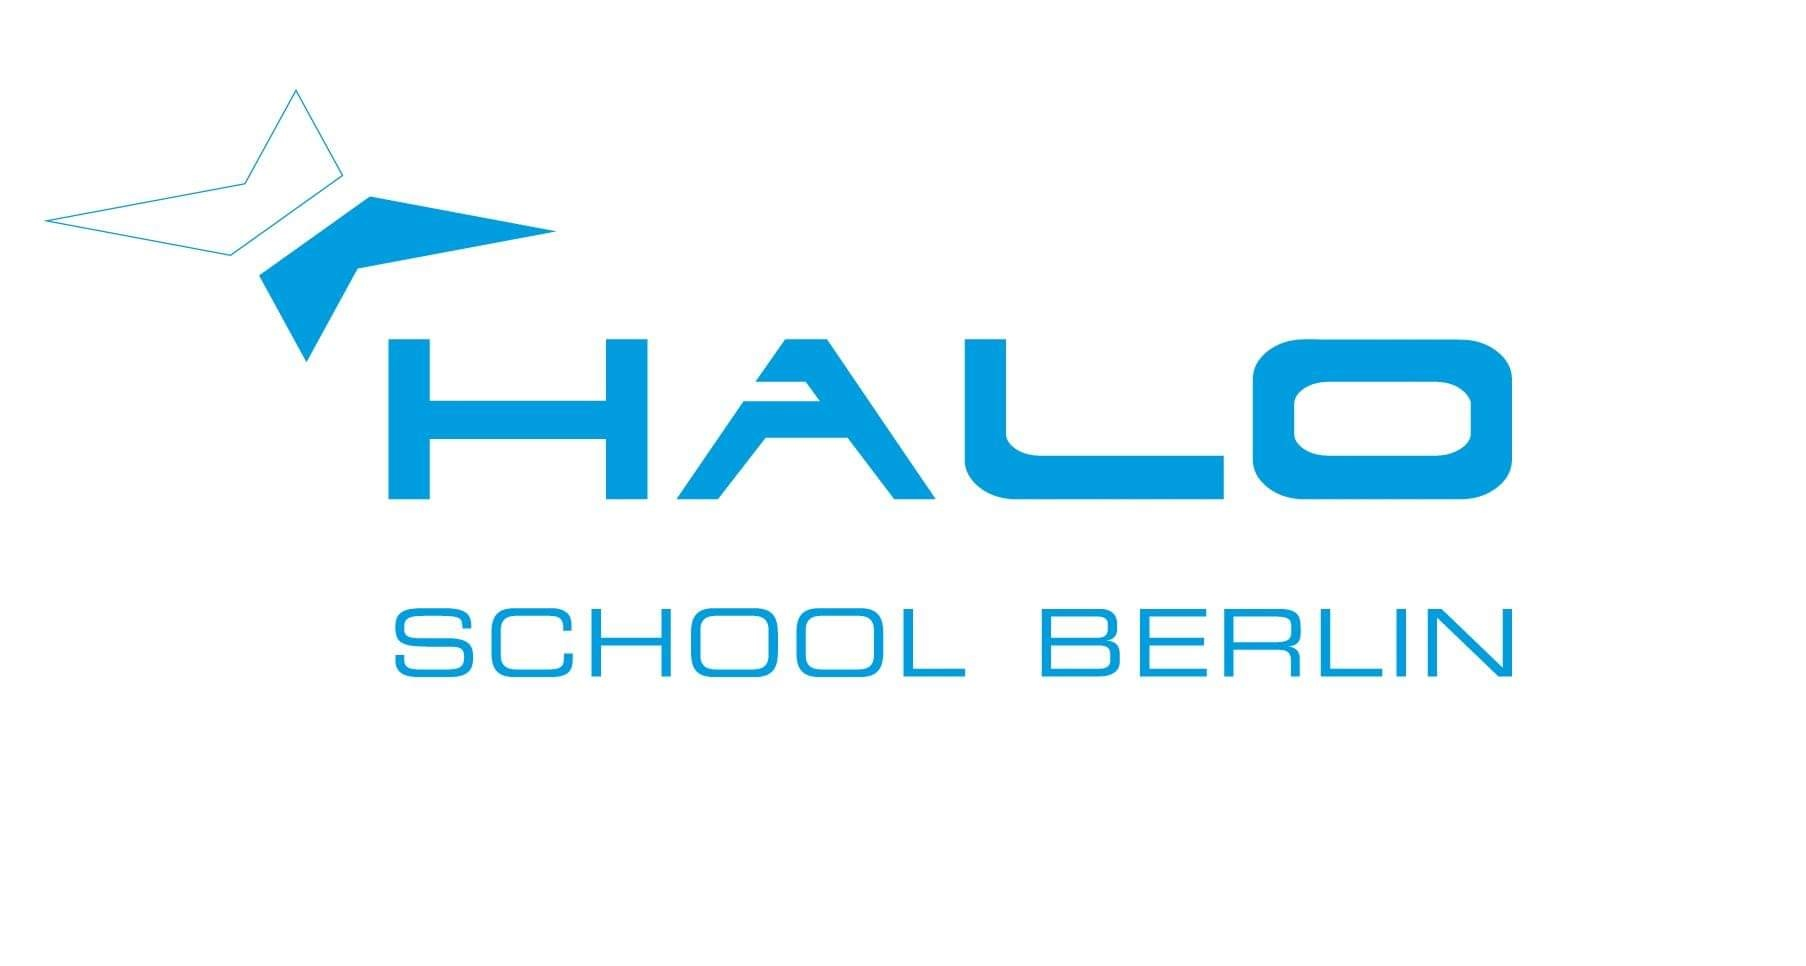 HALO - German Language Courses - Berlin Charlottenburg Wilmersdorf  HALO SCHOOL in Berlin Charlottenburg Wilmersdorf. German language courses in A1, A2, B2, B2, C1, C2 levels, examen preparations for Telc, DaF & Goethe certificates. Tailor-made language individual classes for business, university and work in Germany ( www.halo-school.com )